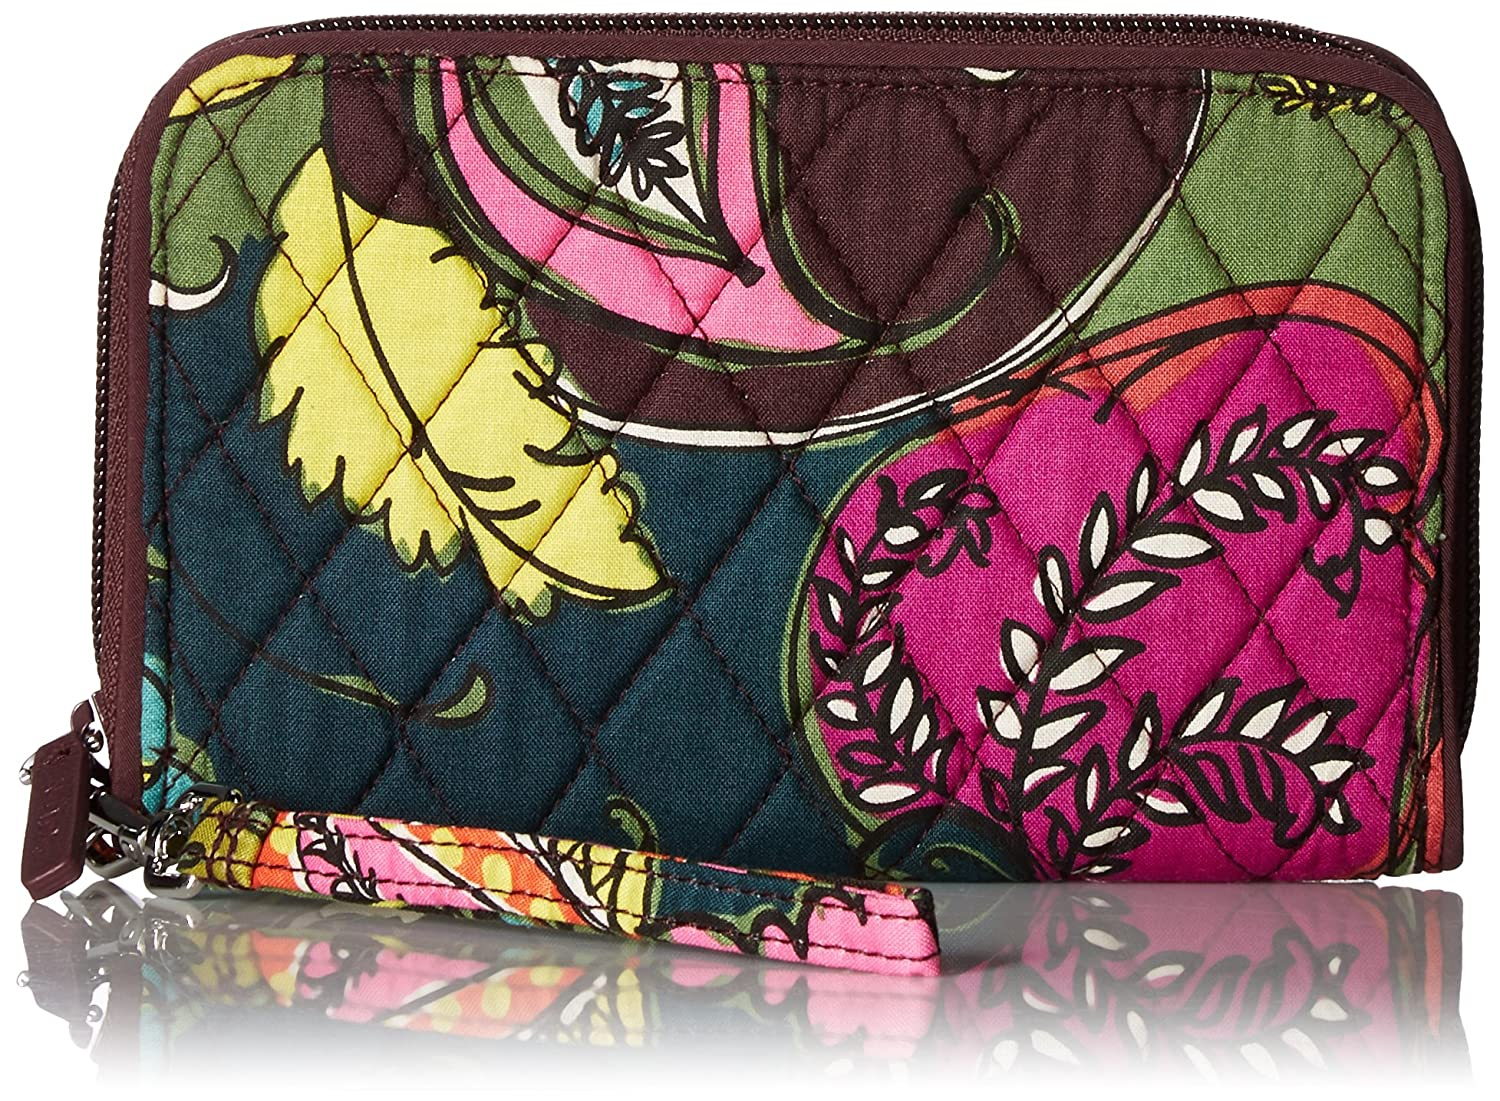 Vera Bradley RFID Grab & Go Wristlet, Signature Cotton Autumn Leaves 21202